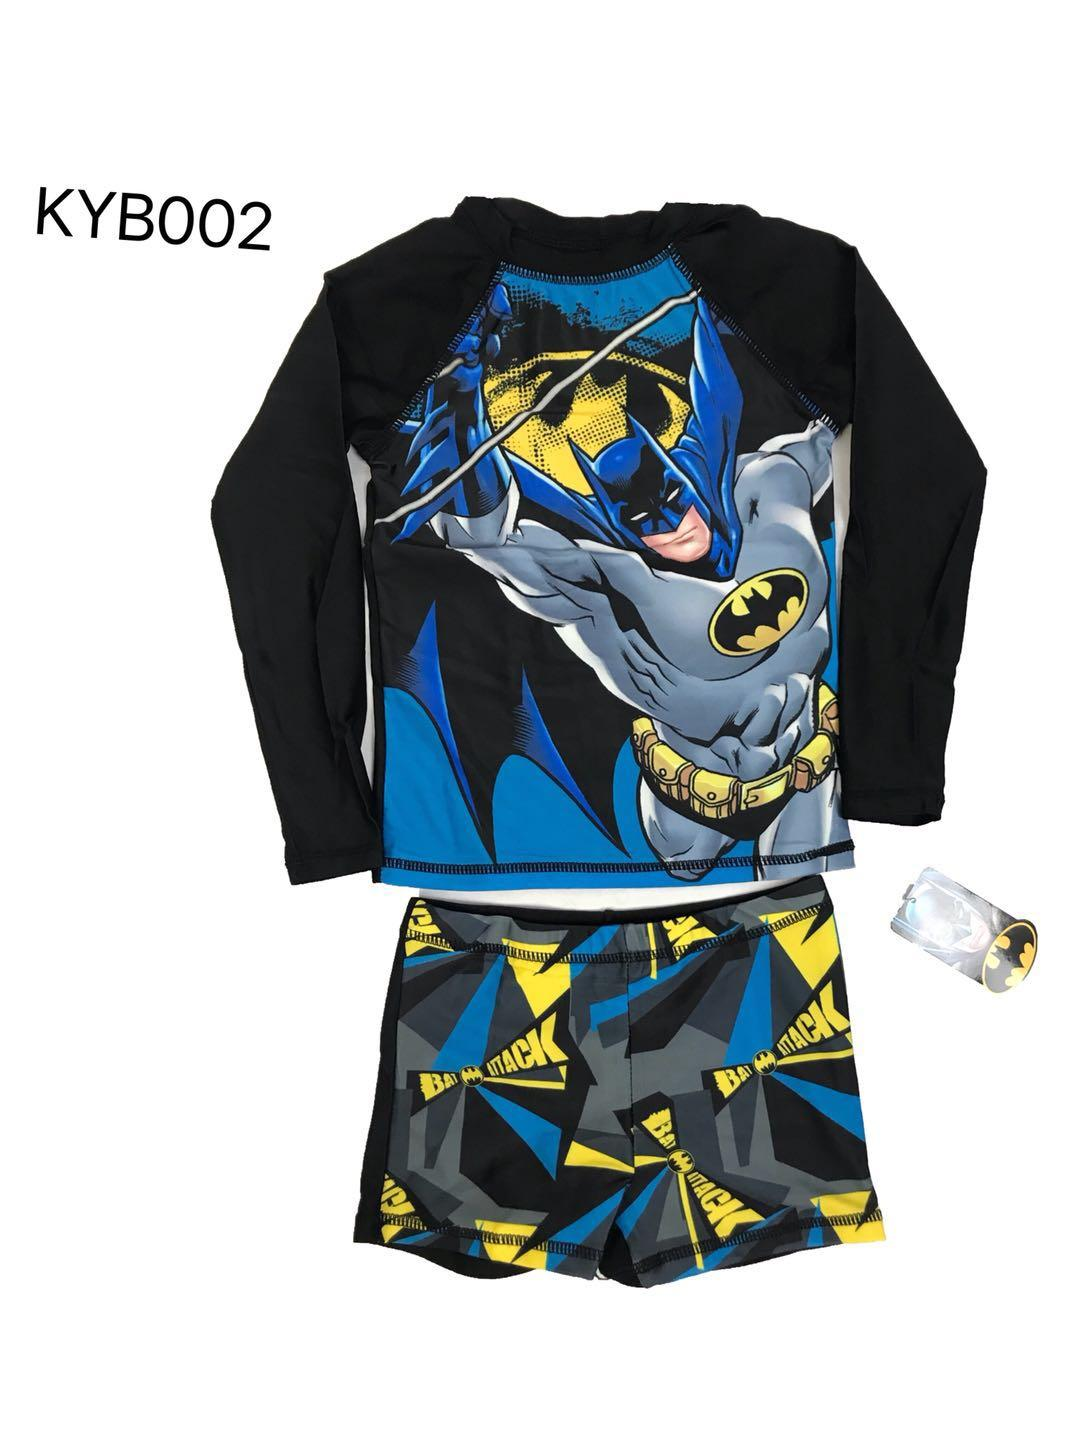 Baby&kids Batman Terno Rashguard Longsleeve And Shorts For Boykyb002 By Joy Wears.